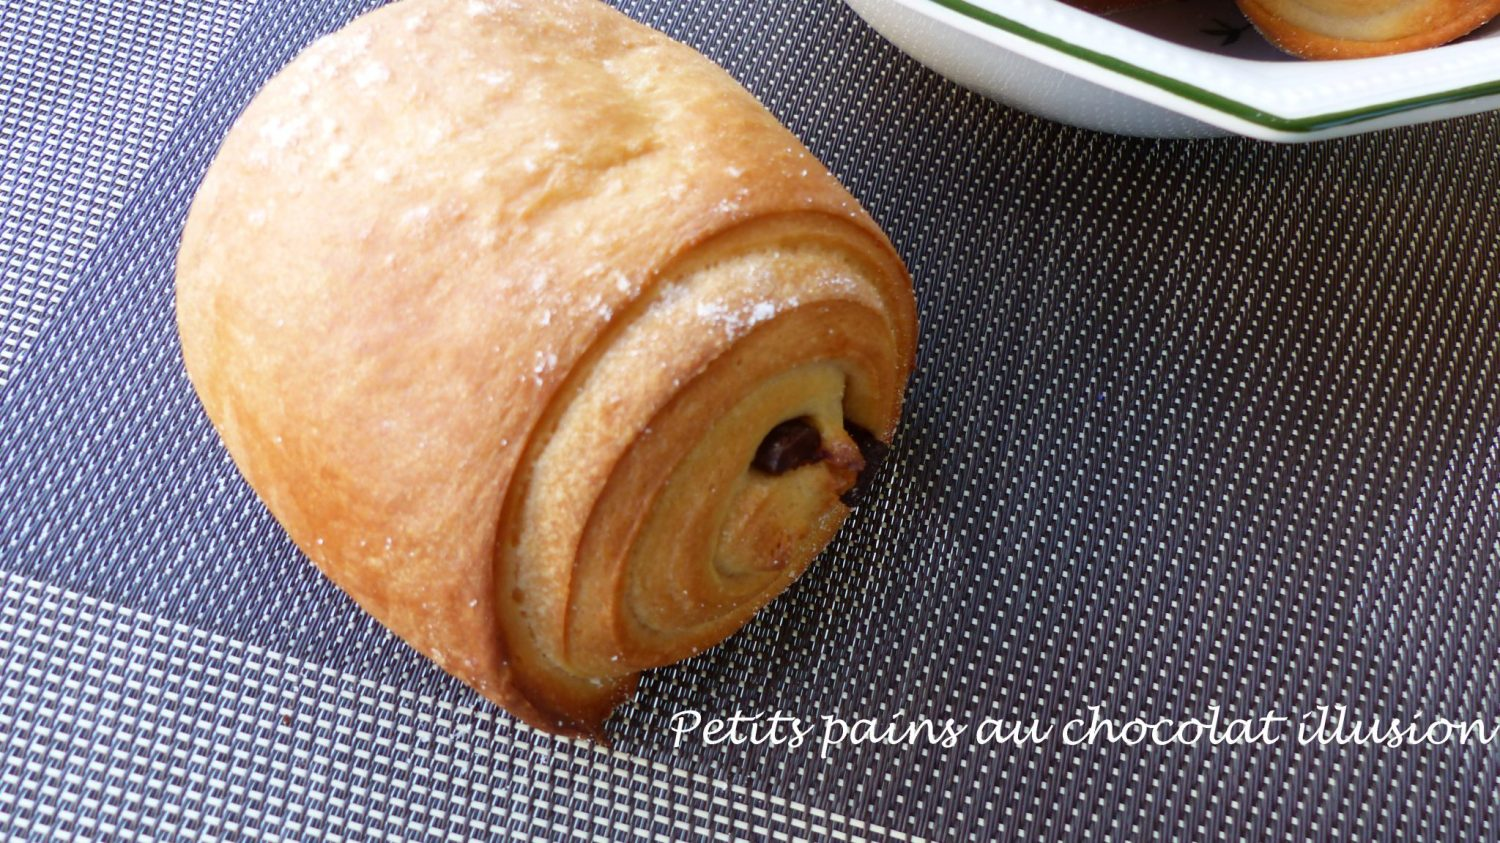 Petits pains au chocolat illusion P1120395 R